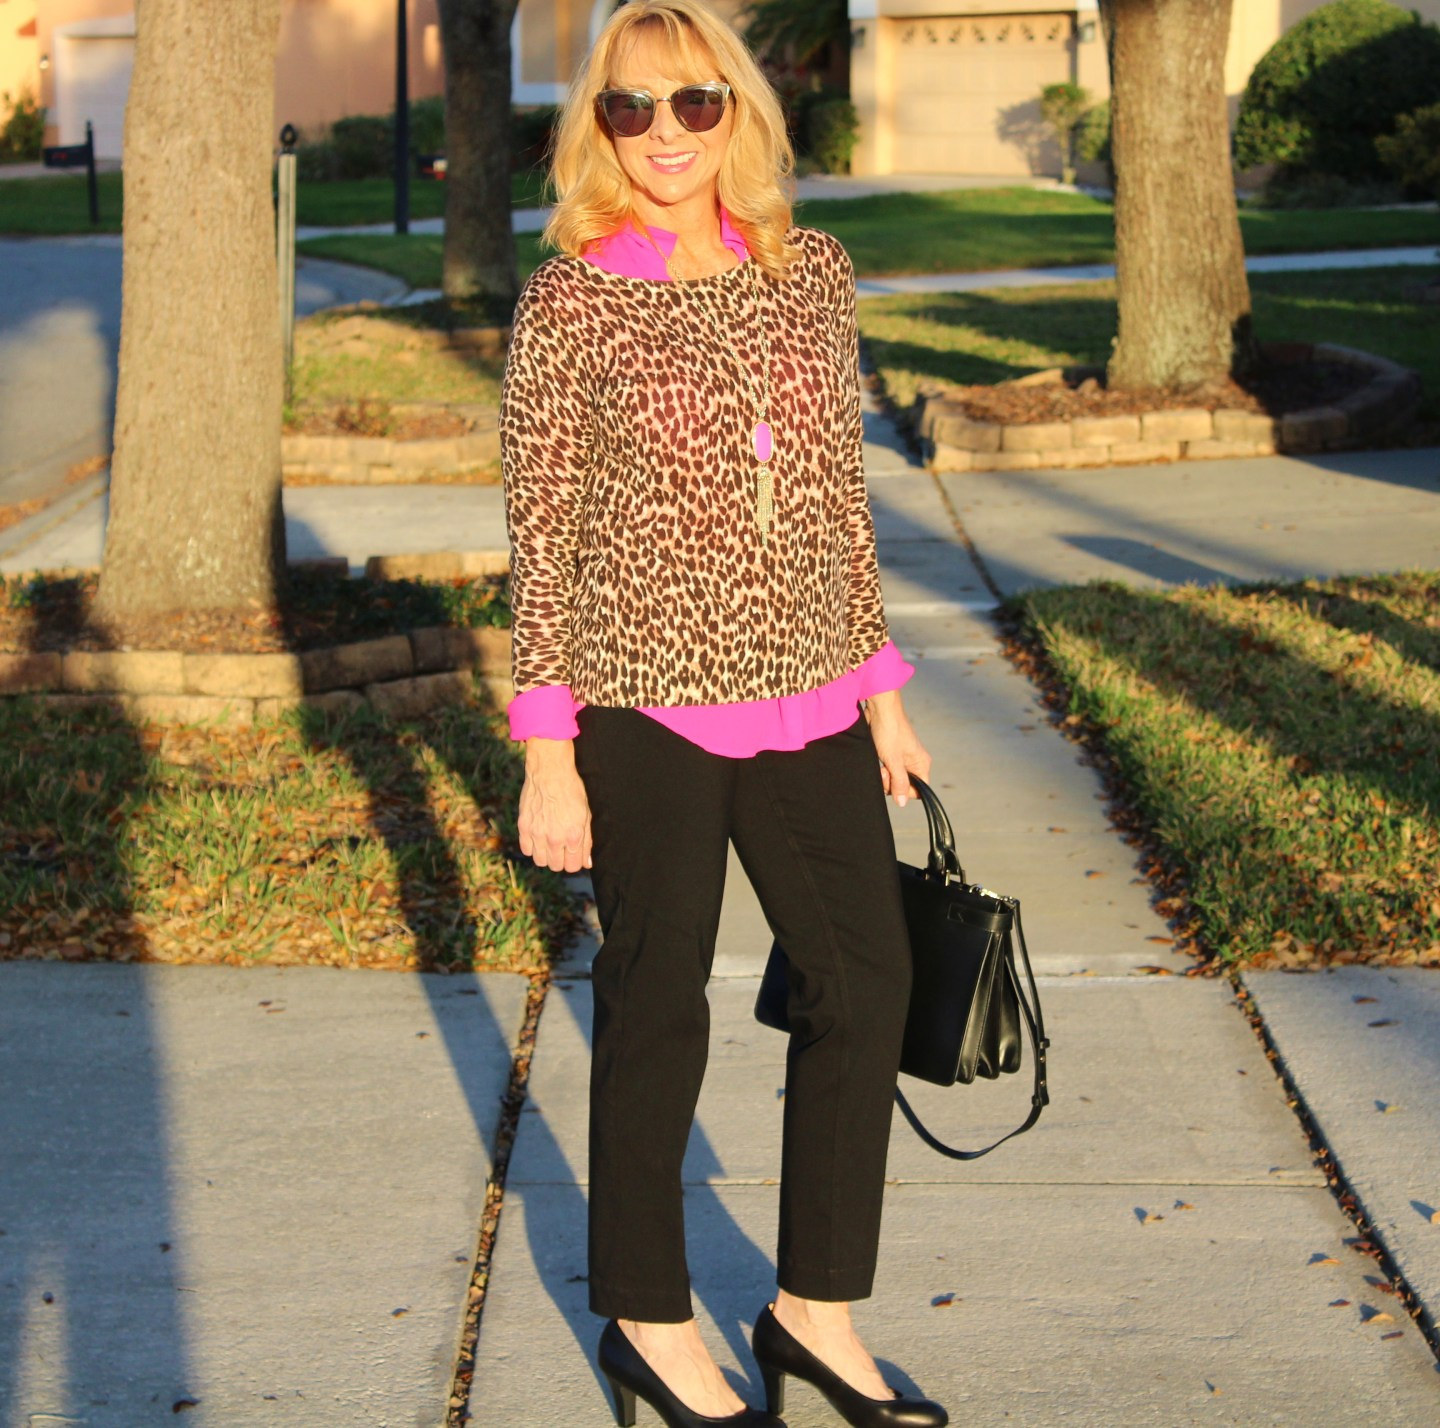 #leopard sweater